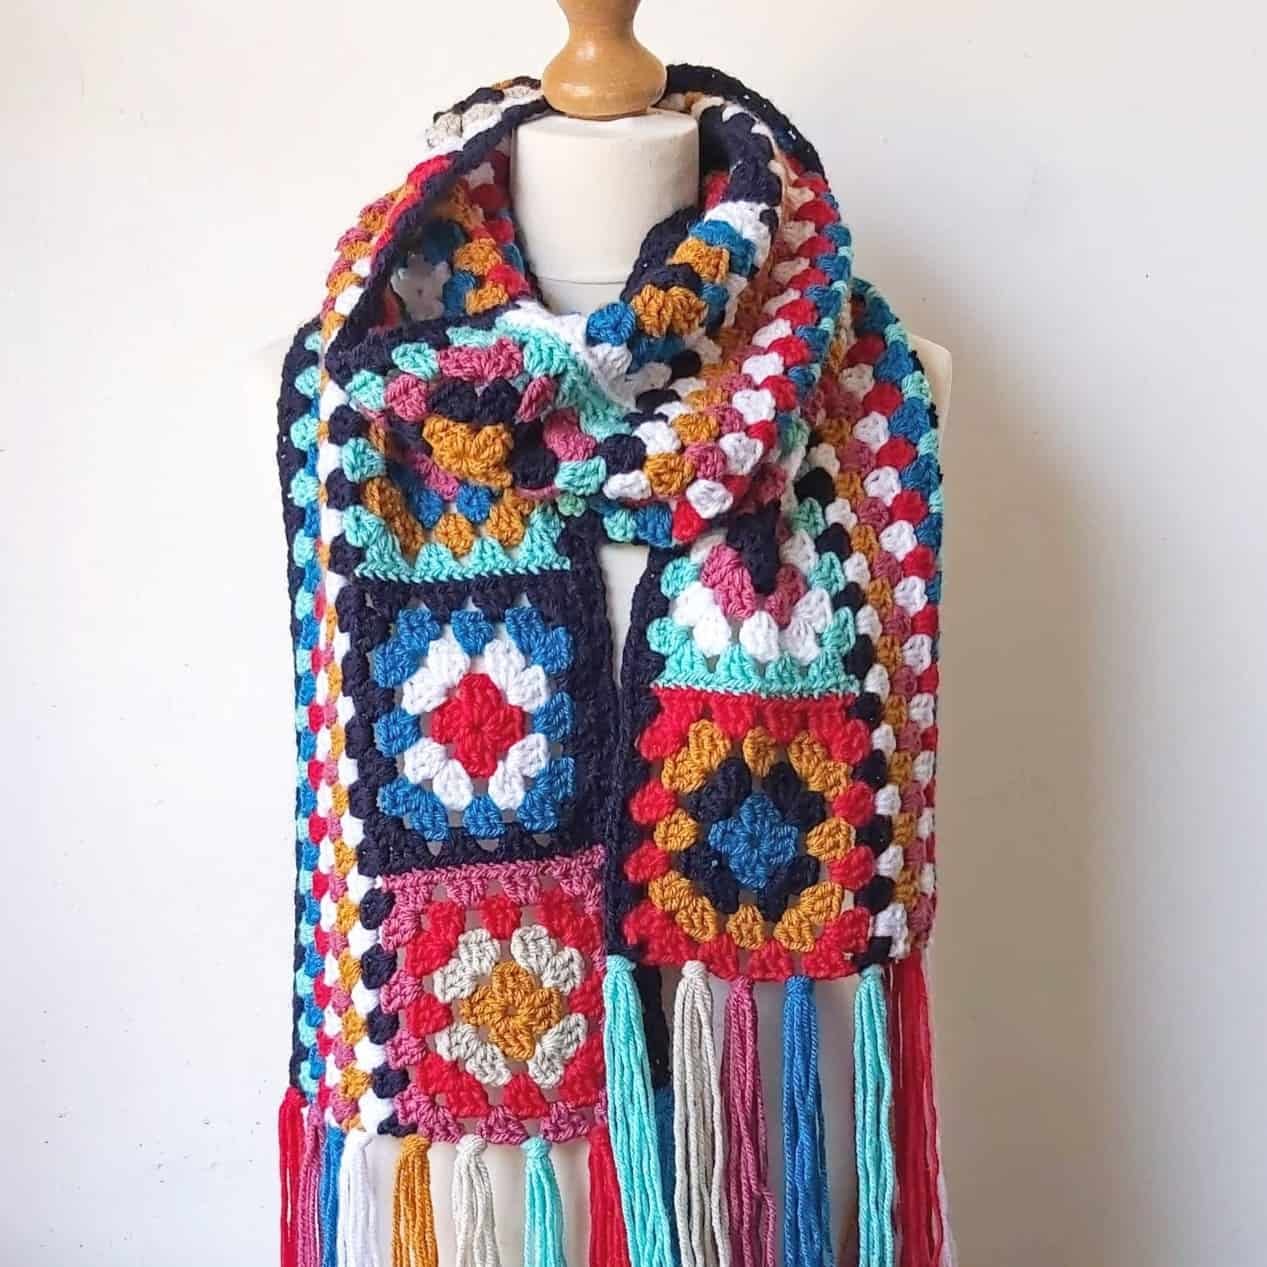 This is a photo of Free Printable Crochet Granny Square Patterns with regard to crochet shirt